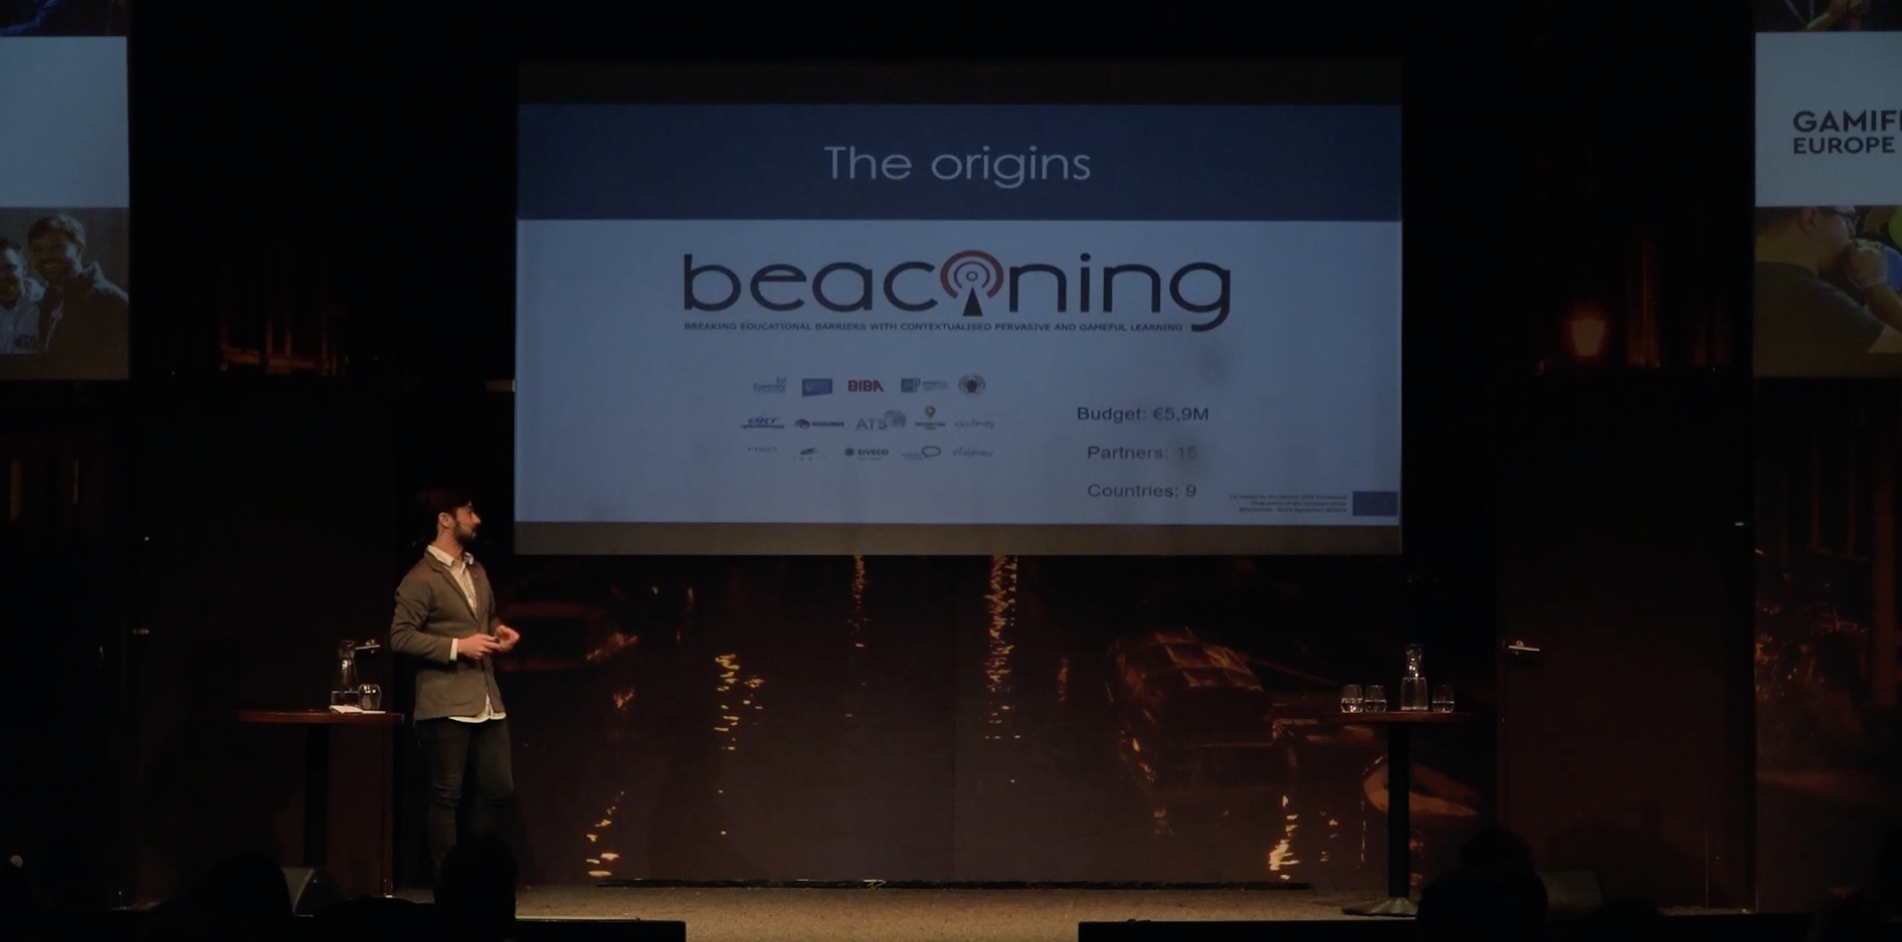 BEaconing-USe-Case-PlayVisit